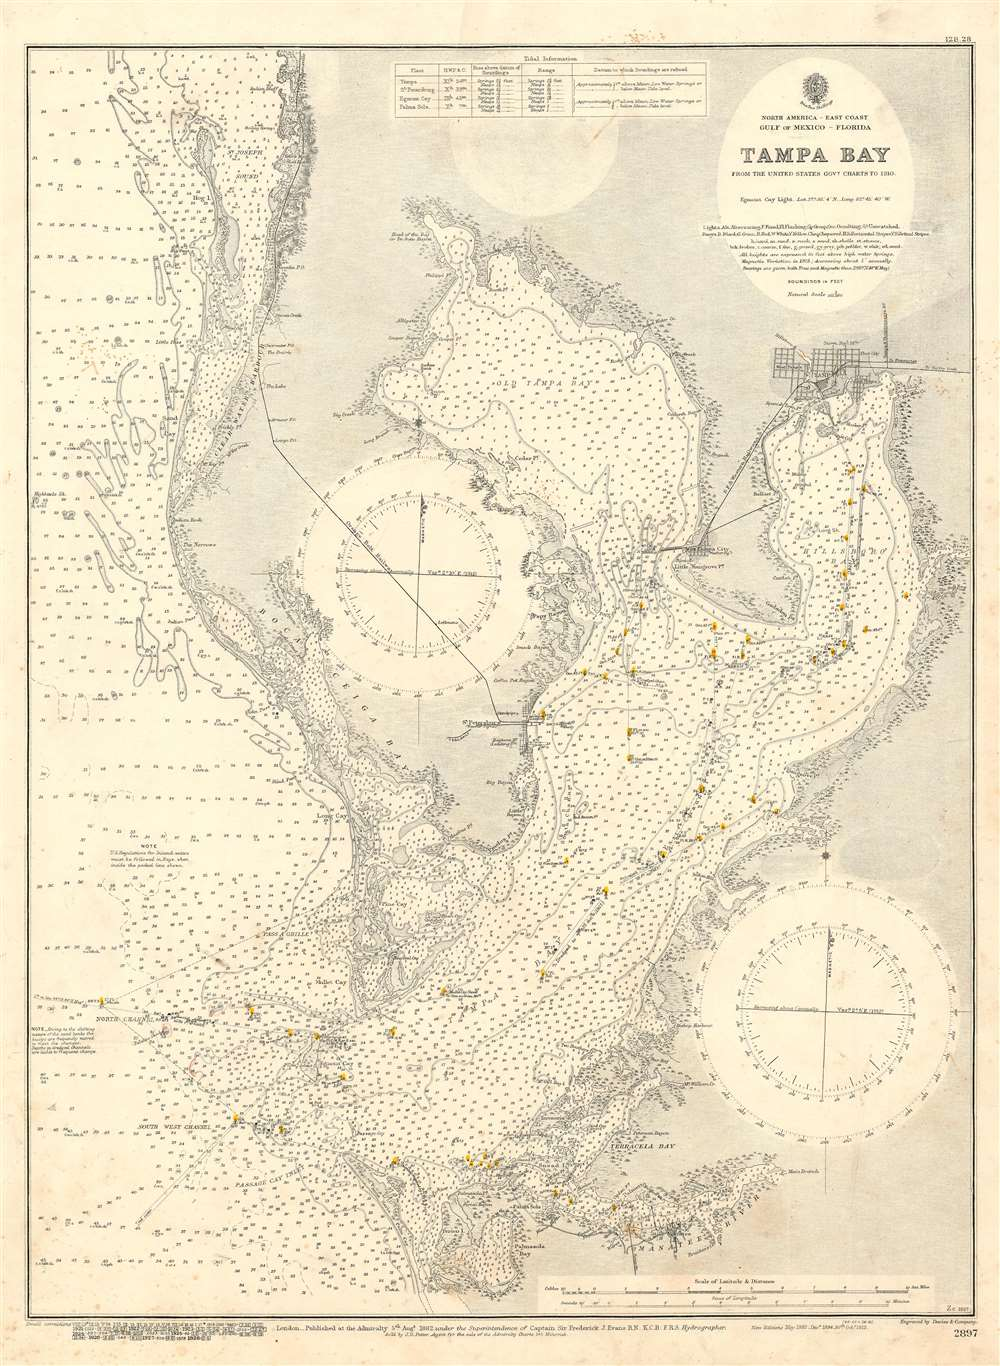 Tampa Bay from the United States Govt. Charts to 1910. - Main View